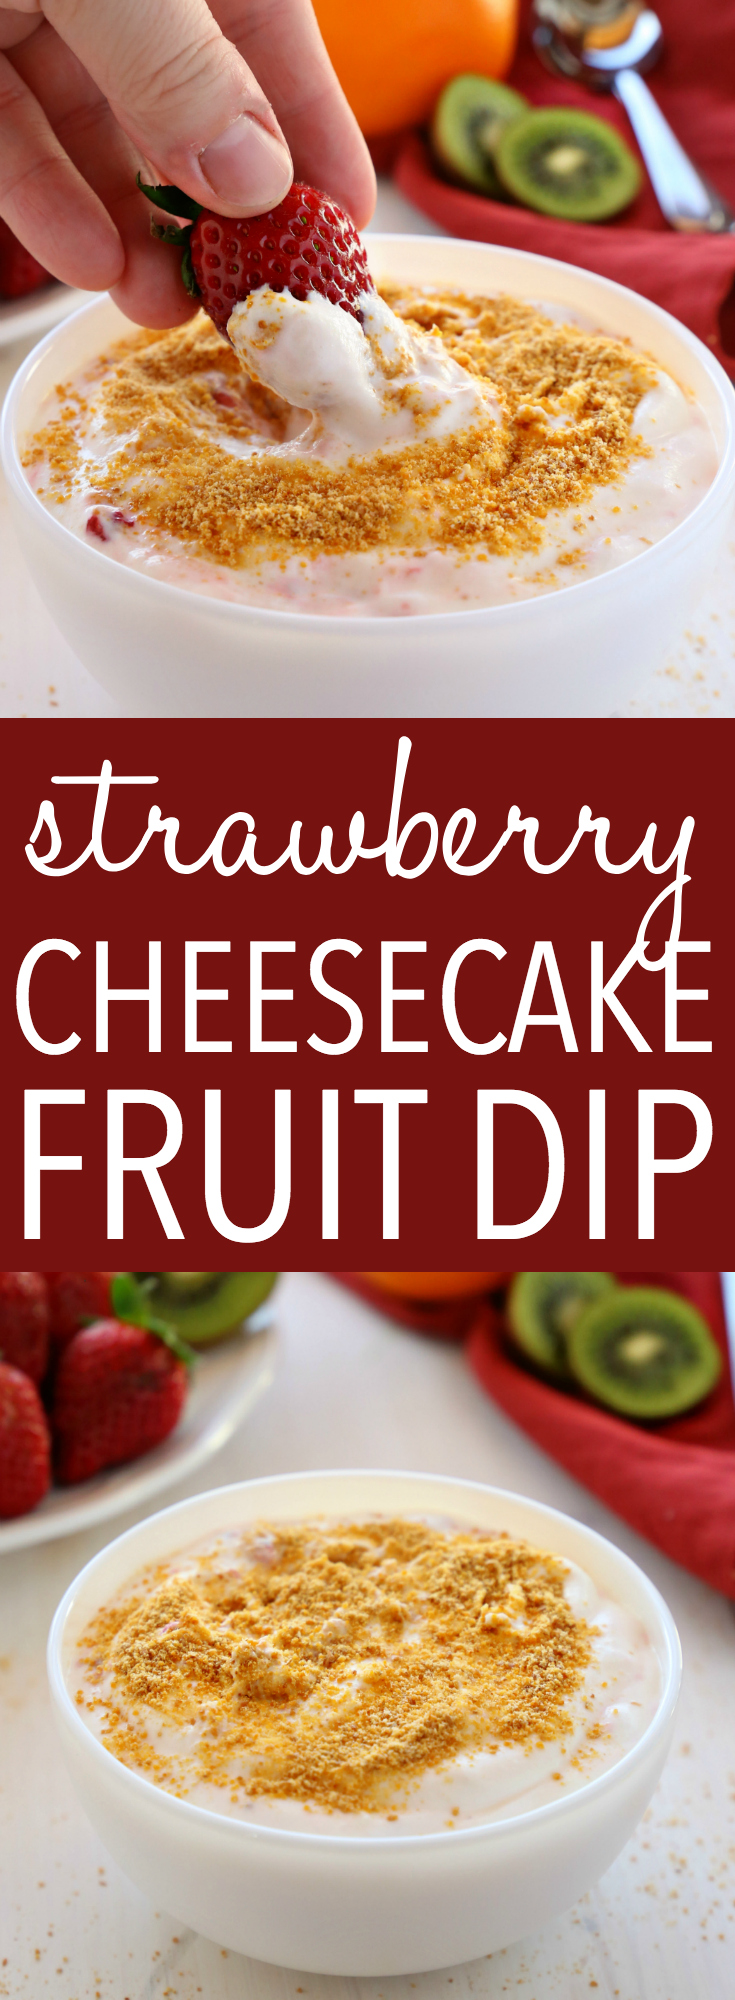 This Strawberry Cheesecake Fruit Dip is the perfect low fat summer treat! It's easy to make with only a few simple ingredients and it's a crowd-pleaser for barbecues and parties! Recipe from thebusybaker.ca! #fruitdip #strawberrycheesecake #strawberrycheesecakefruitdip #summerdessert #lowfatdessert #easydessert via @busybakerblog